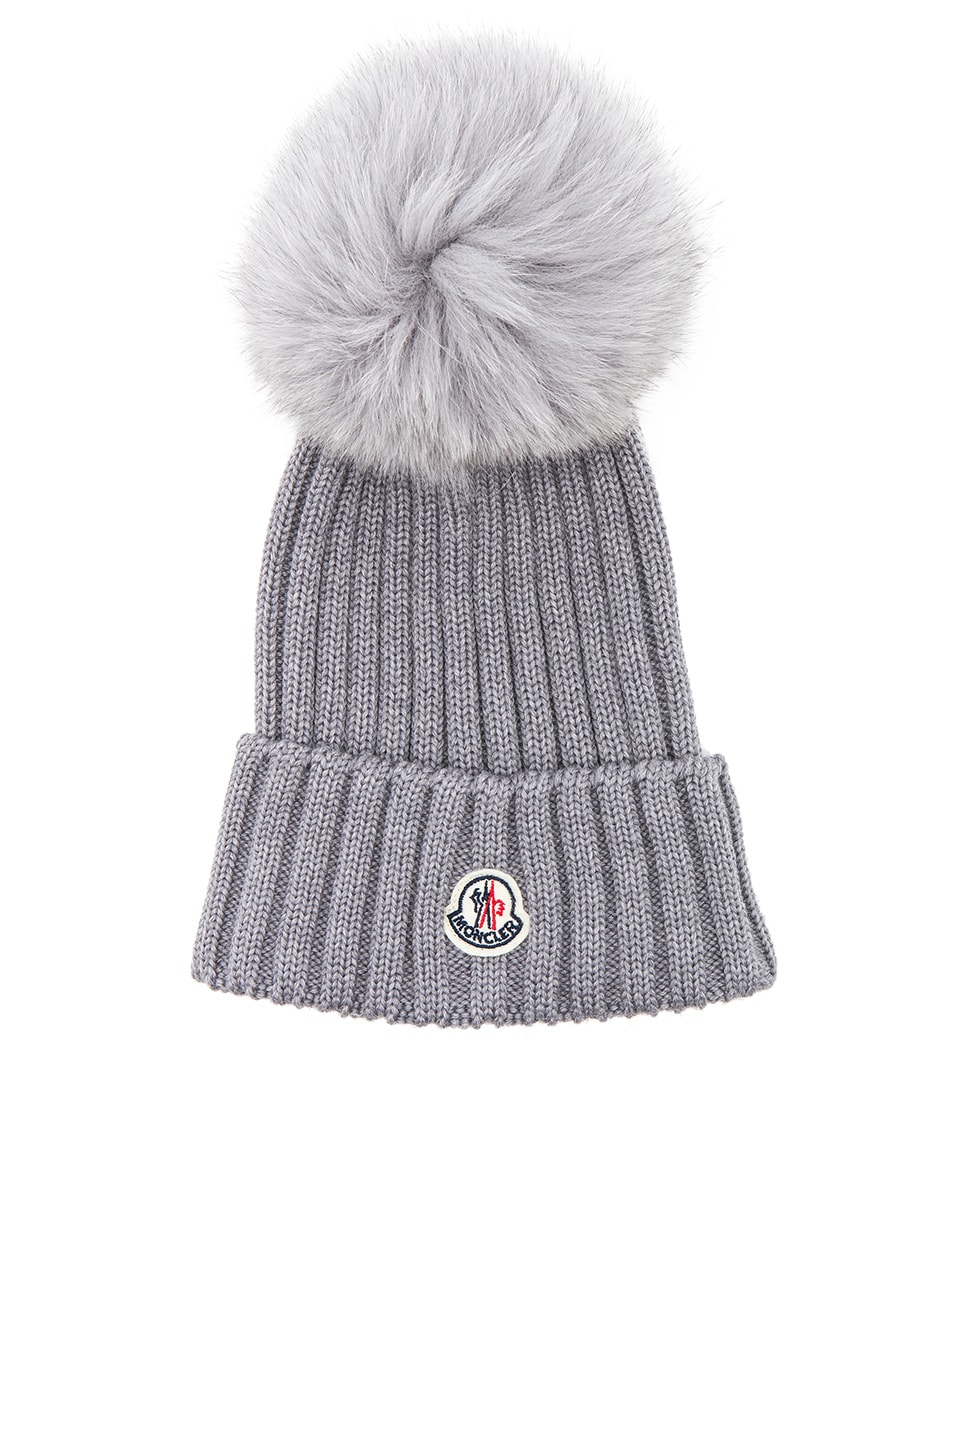 dffa1764ab9 Image 1 of Moncler Berretto Beanie With Fox Fur Pom in Charcoal